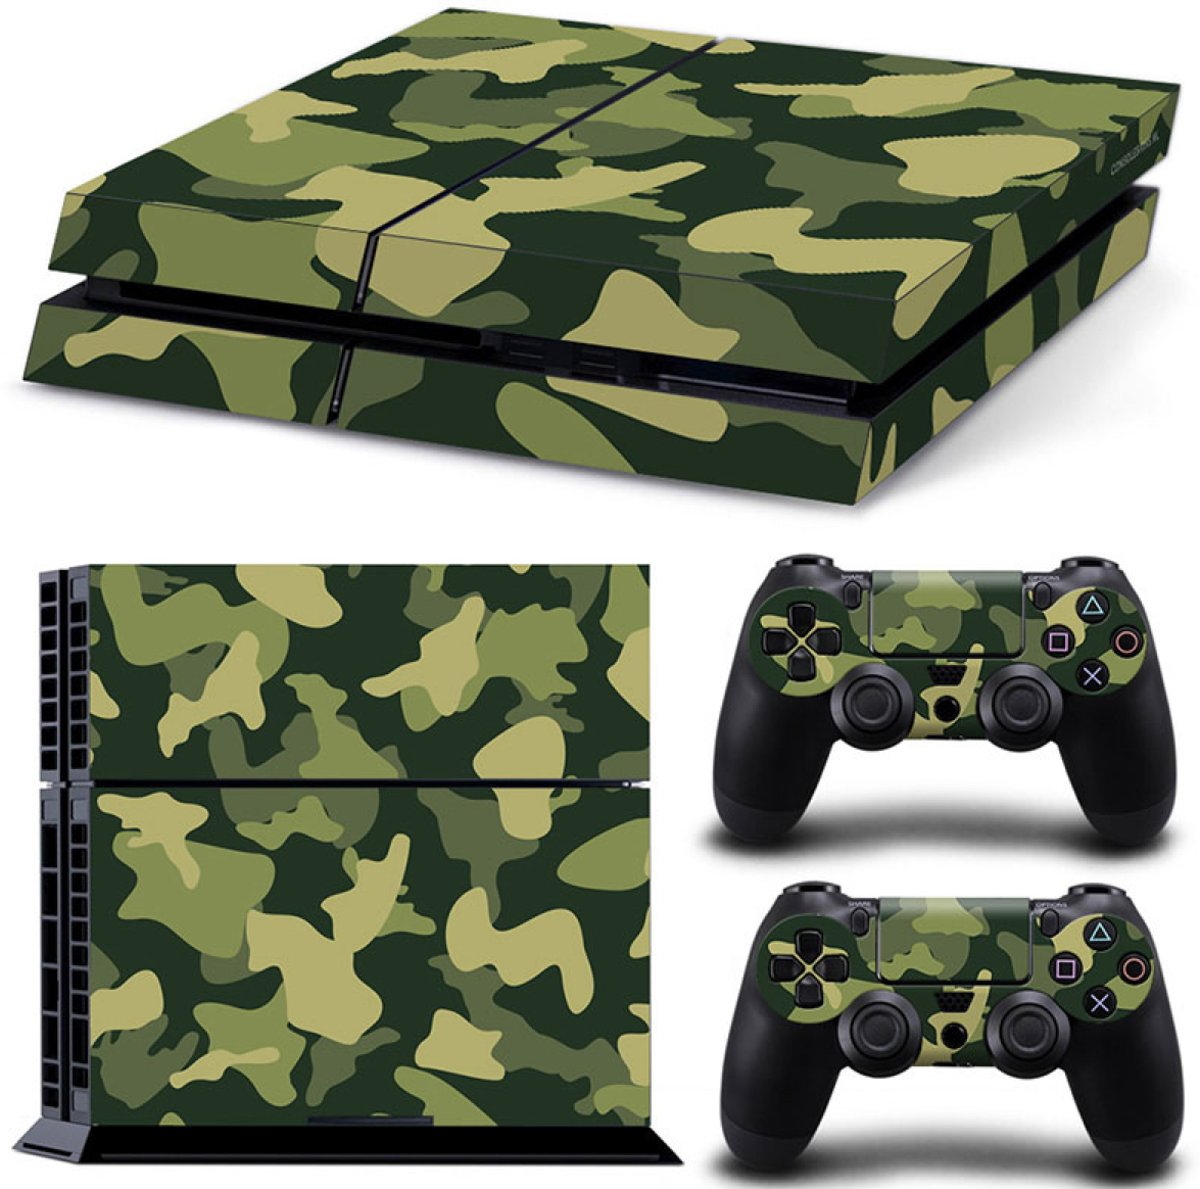 Army Camo / Groen Zwart - PS4 Console Skins PlayStation Stickers